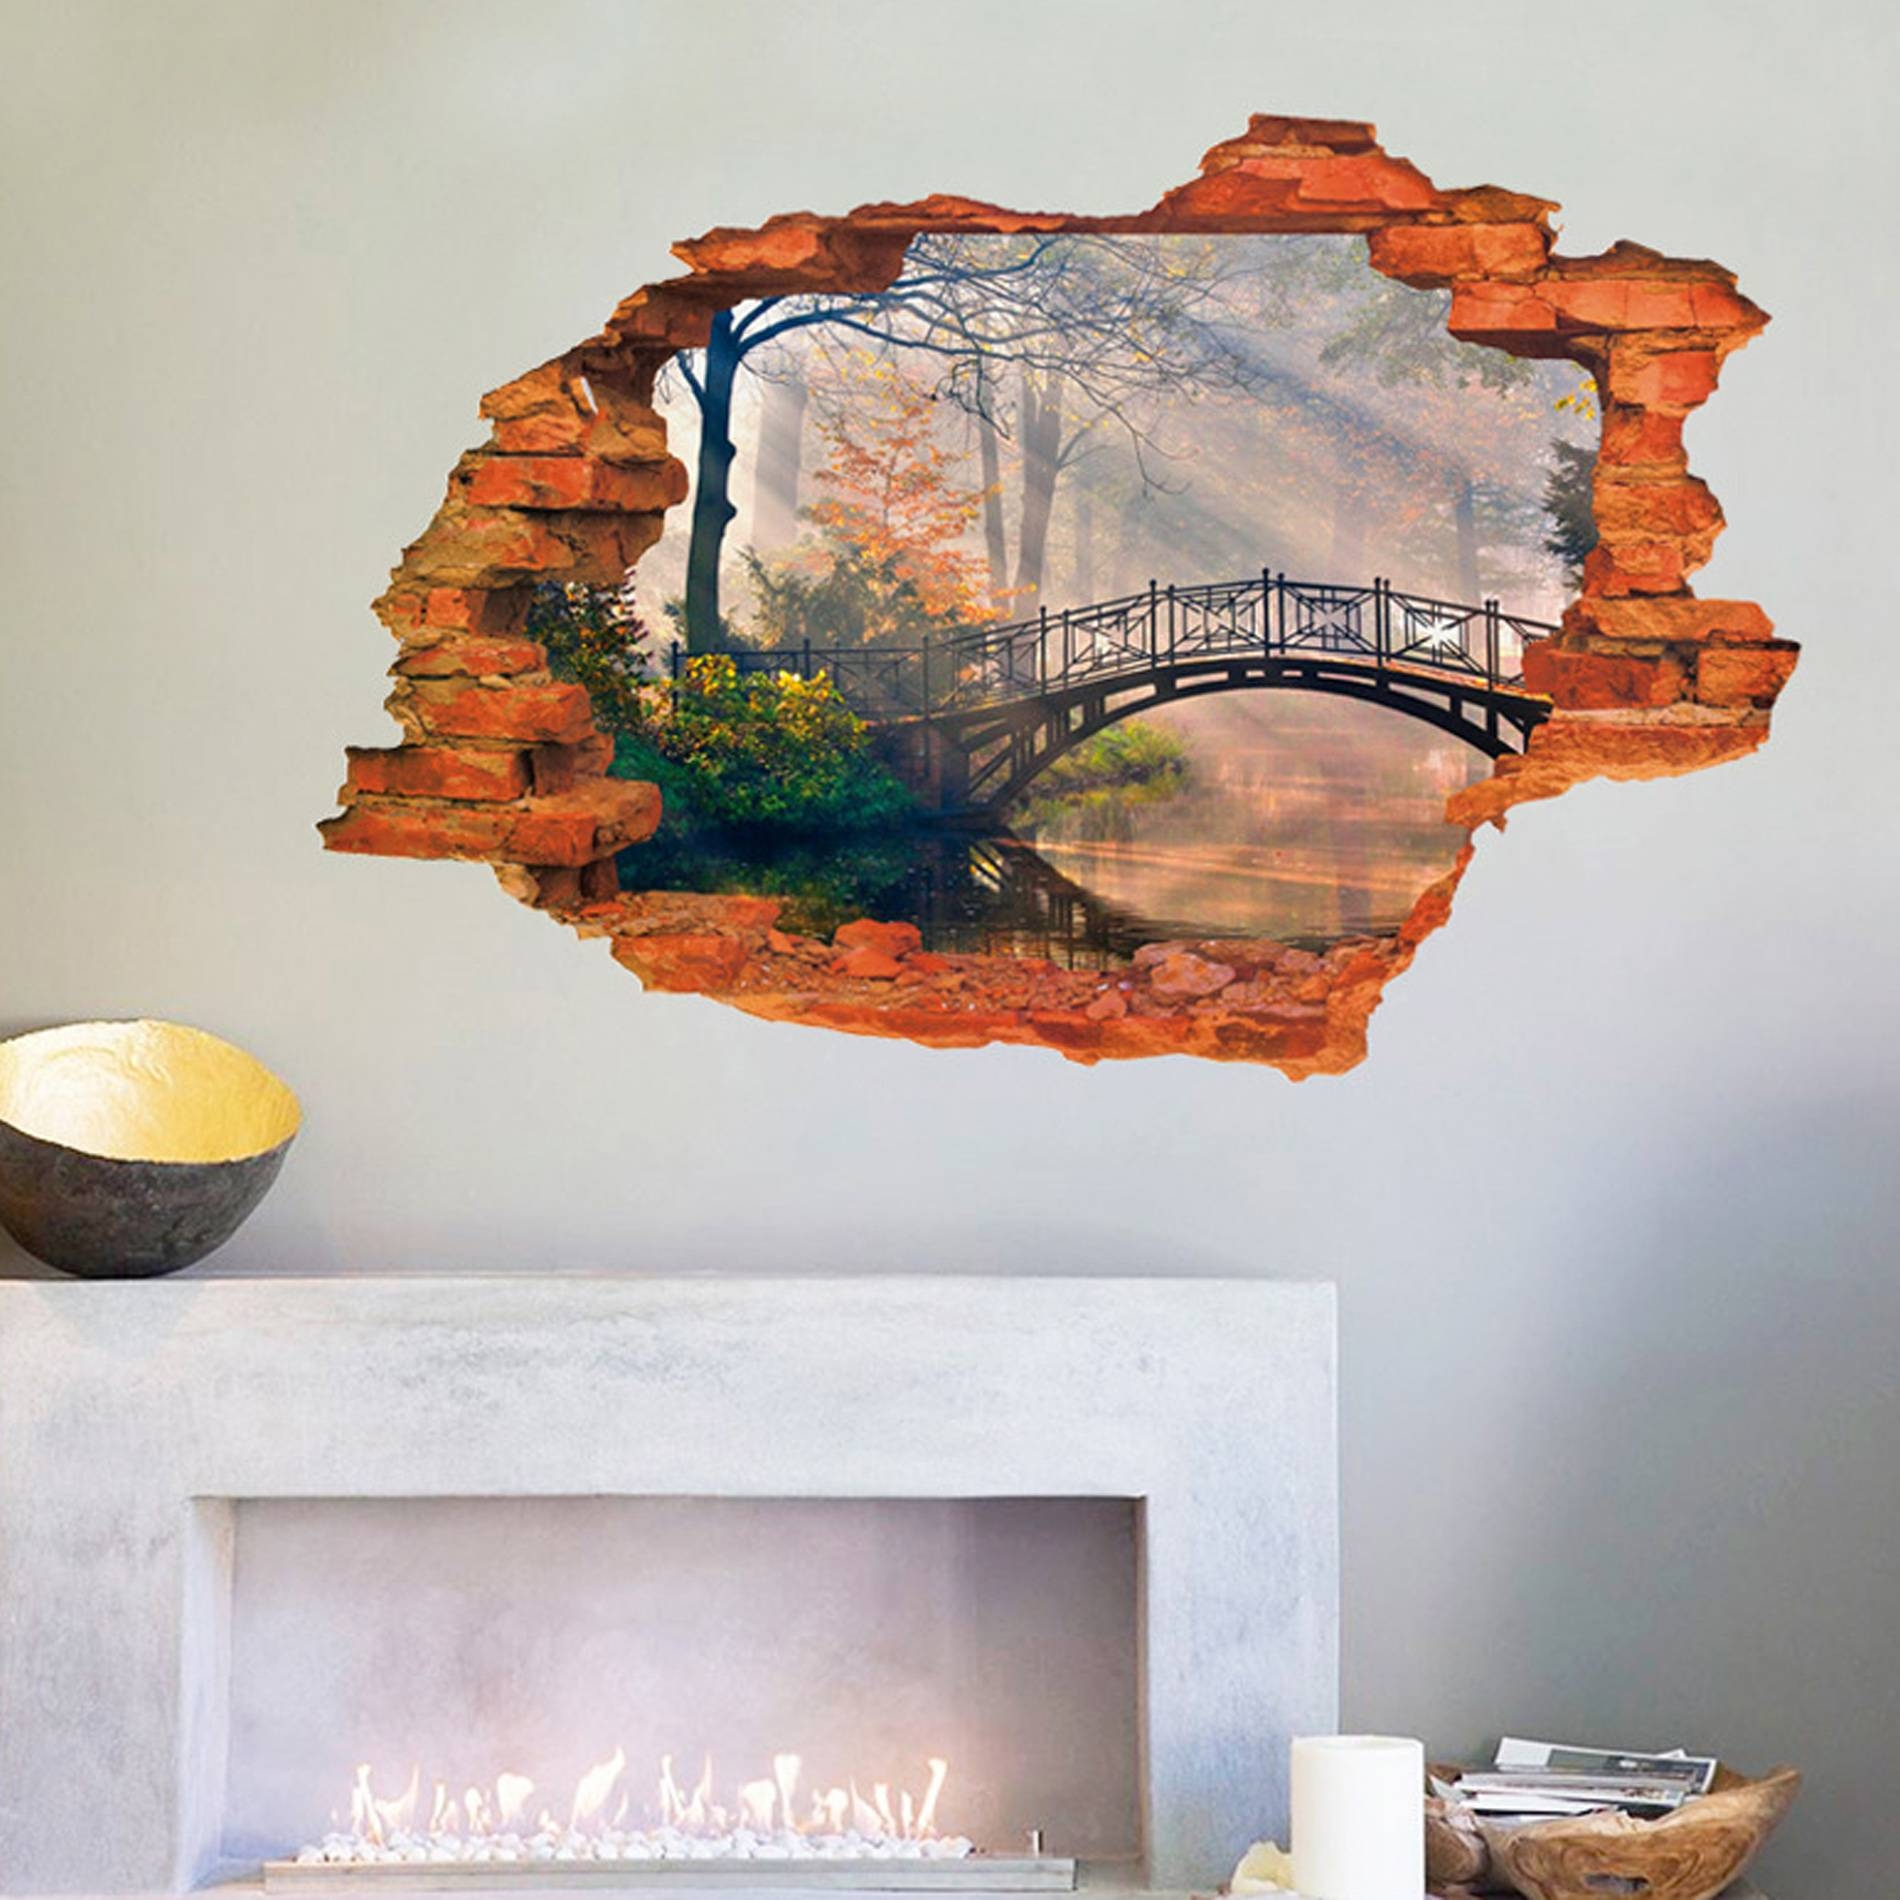 3D Broken Wall Removable Wall Sticker Art Decal Living Room Decor  Throughout Latest 3D Wall Art